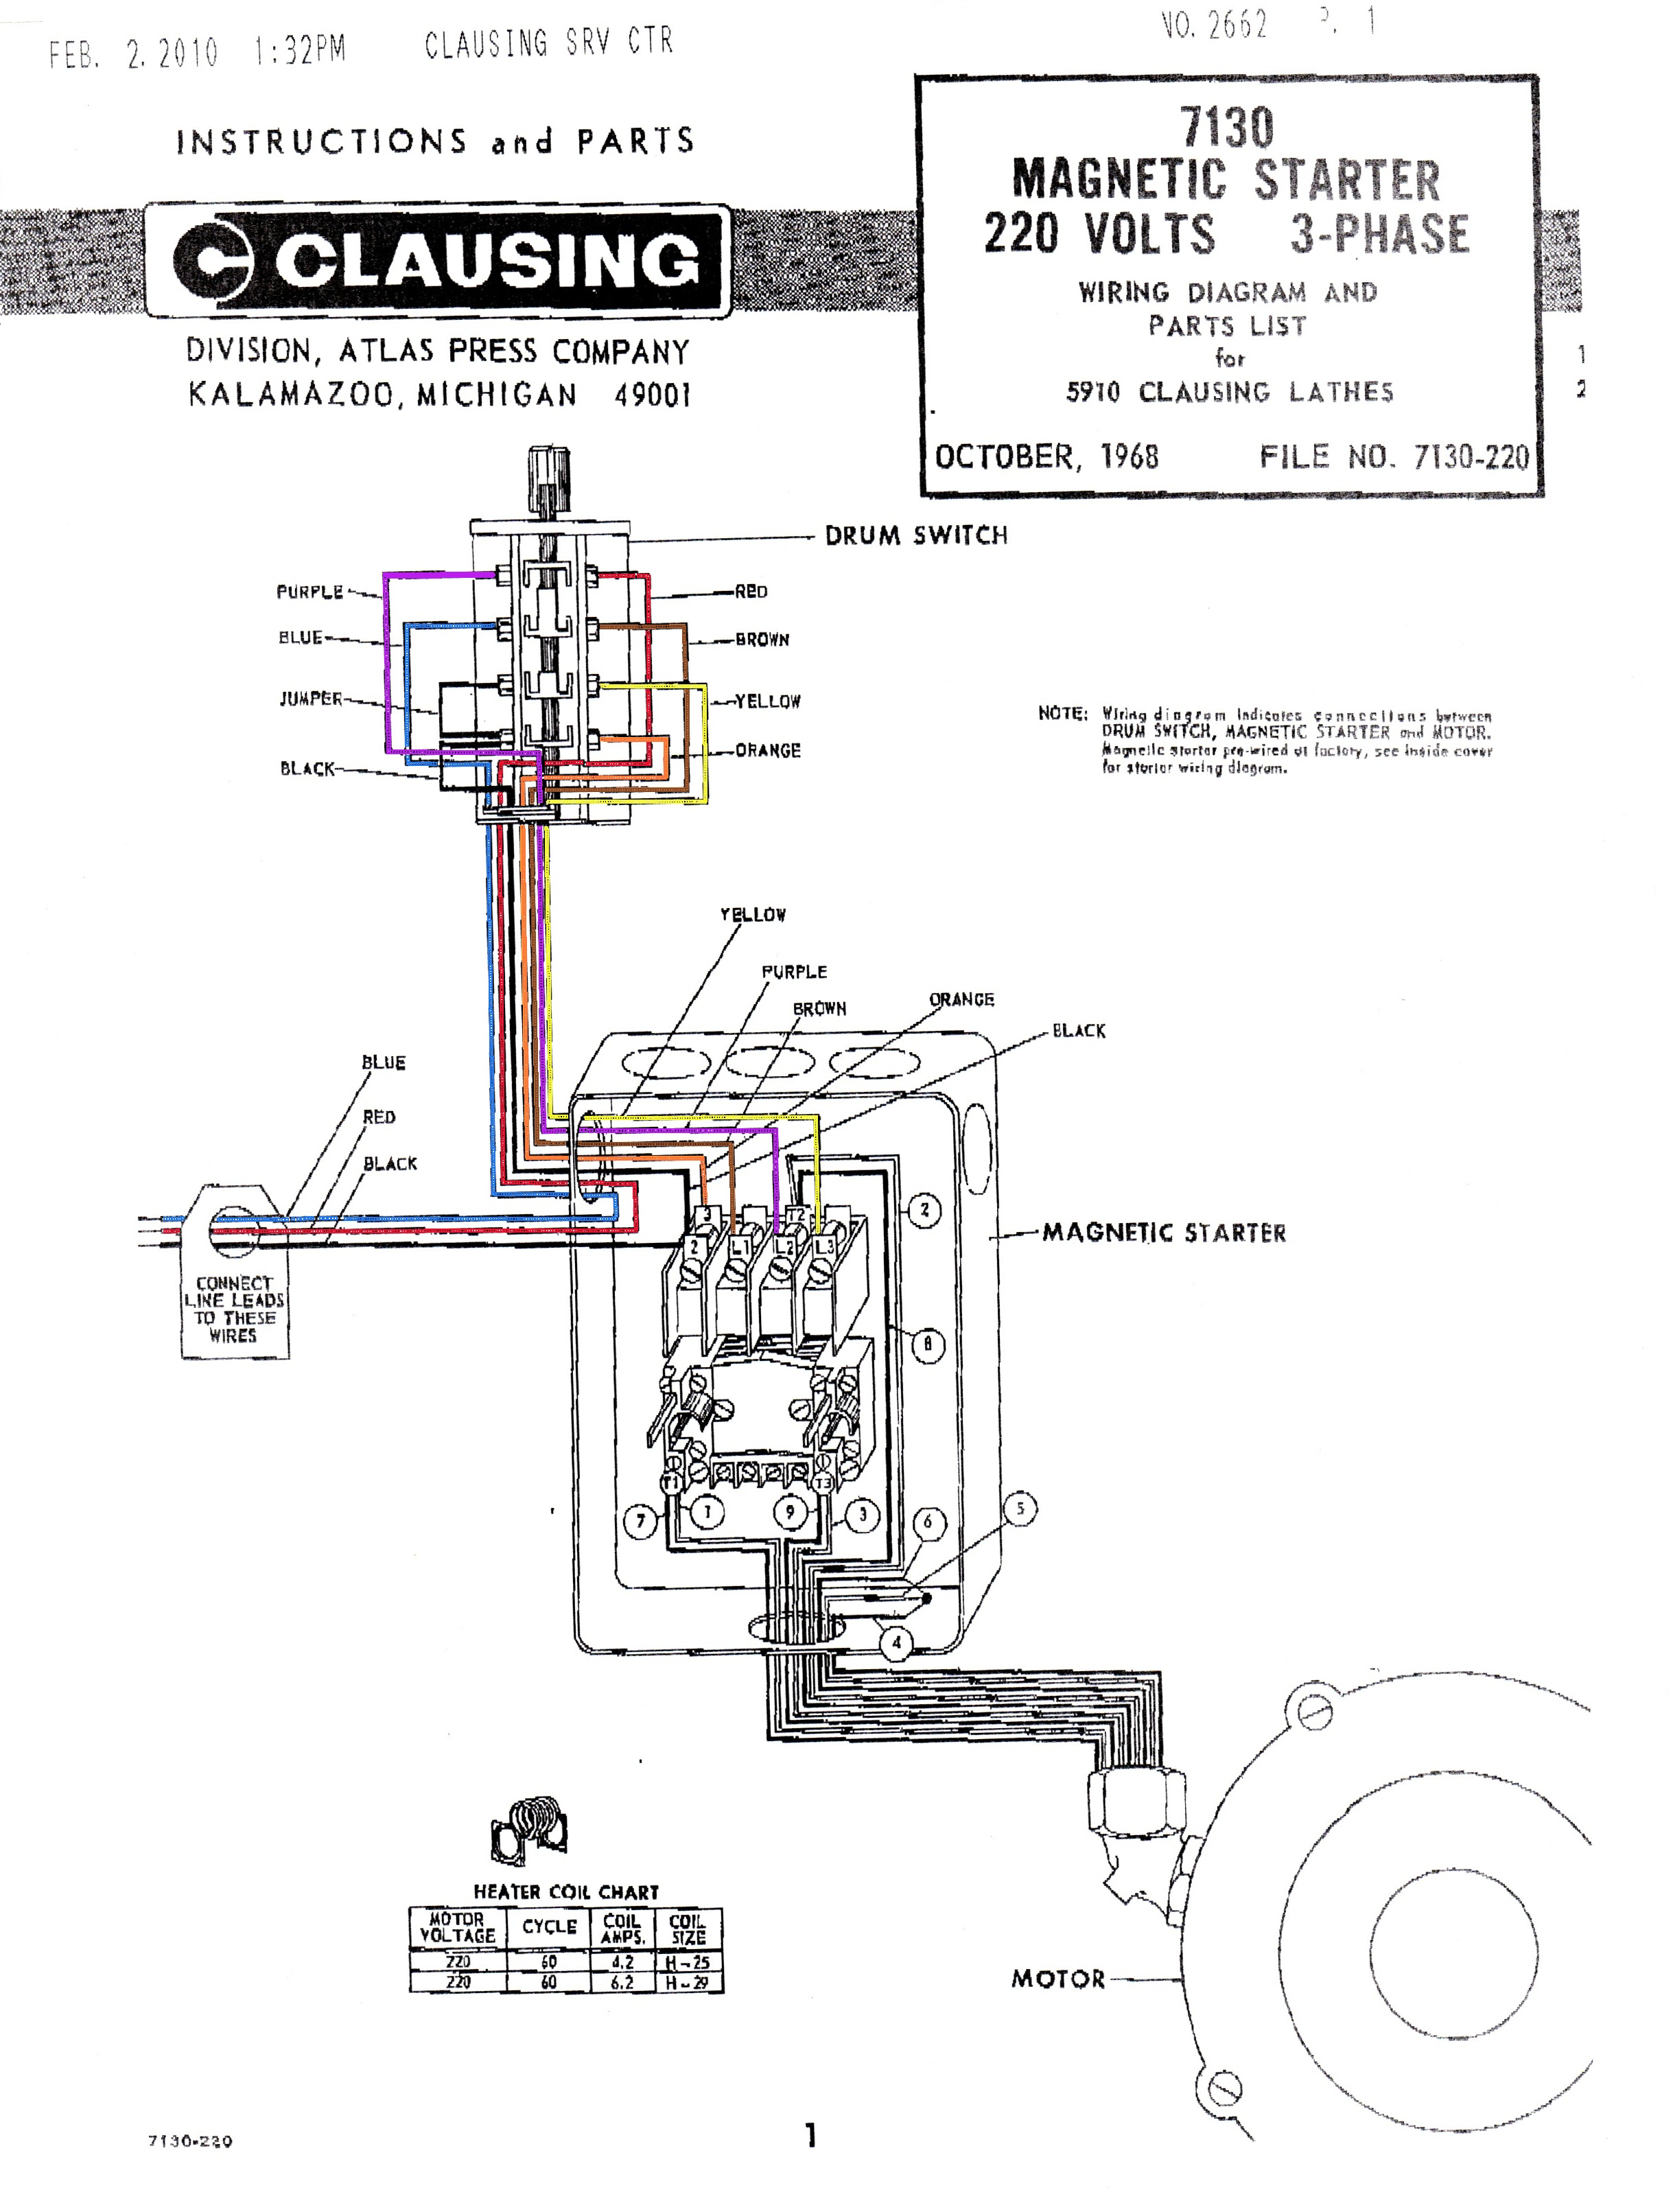 7130 Magnetic Starter Wiring Diagram Color ite motor starter wiring diagram dirty weekend hd eaton motor starter wiring diagram at bakdesigns.co